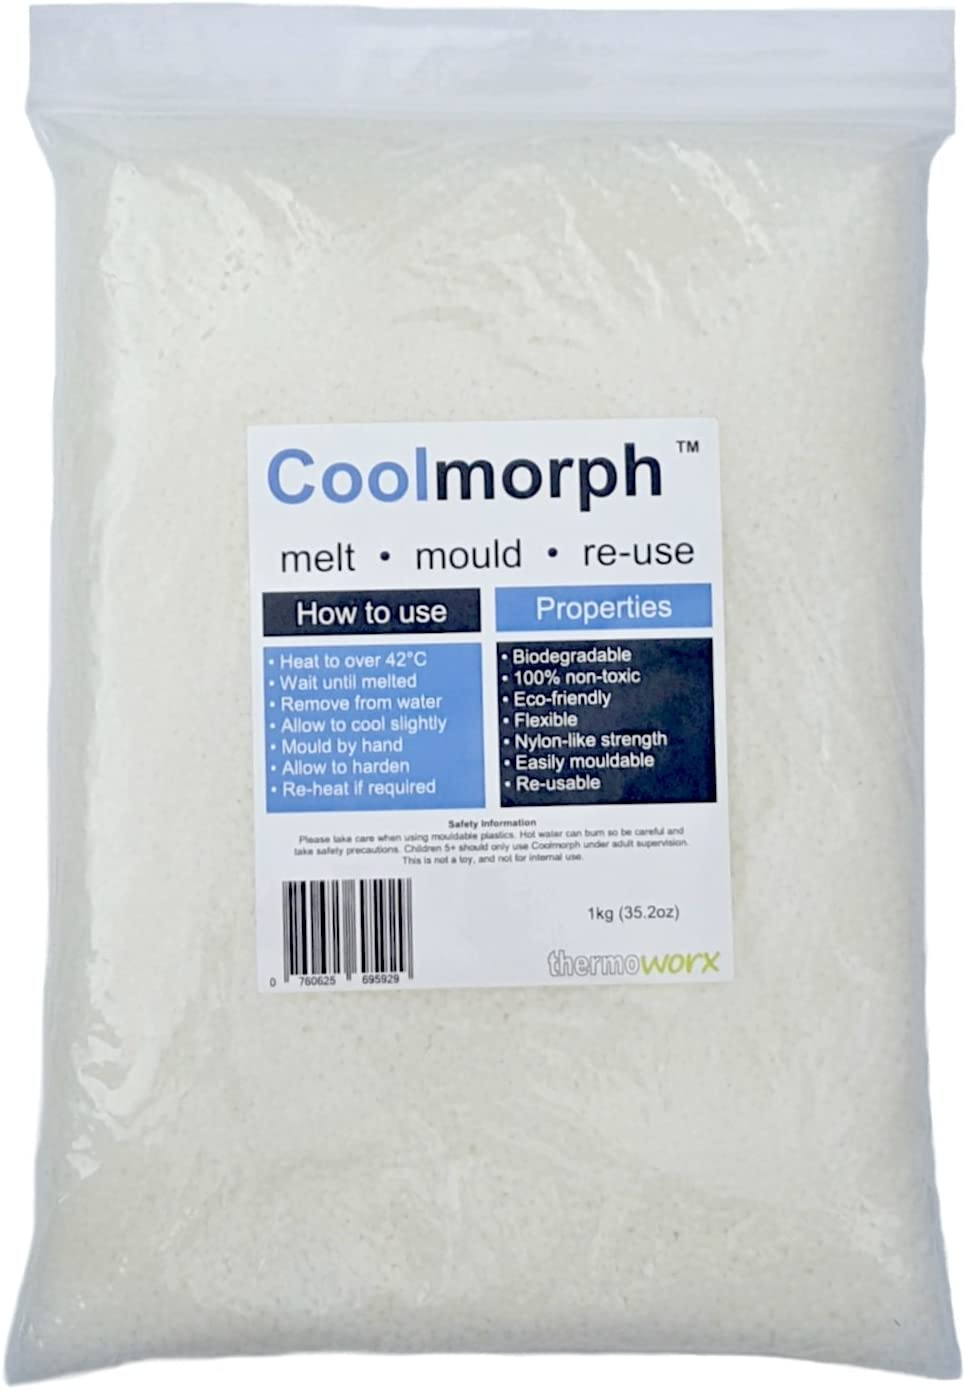 Thermoworx Coolmorph™ 1kg | Lower melting point hand mouldable eco-friendly thermoplastic. Reusable unlimited uses - DIY, Crafts, Repairs, Moulds, Casting, Modelling, Grips, Prototypes. TOP QUALITY!